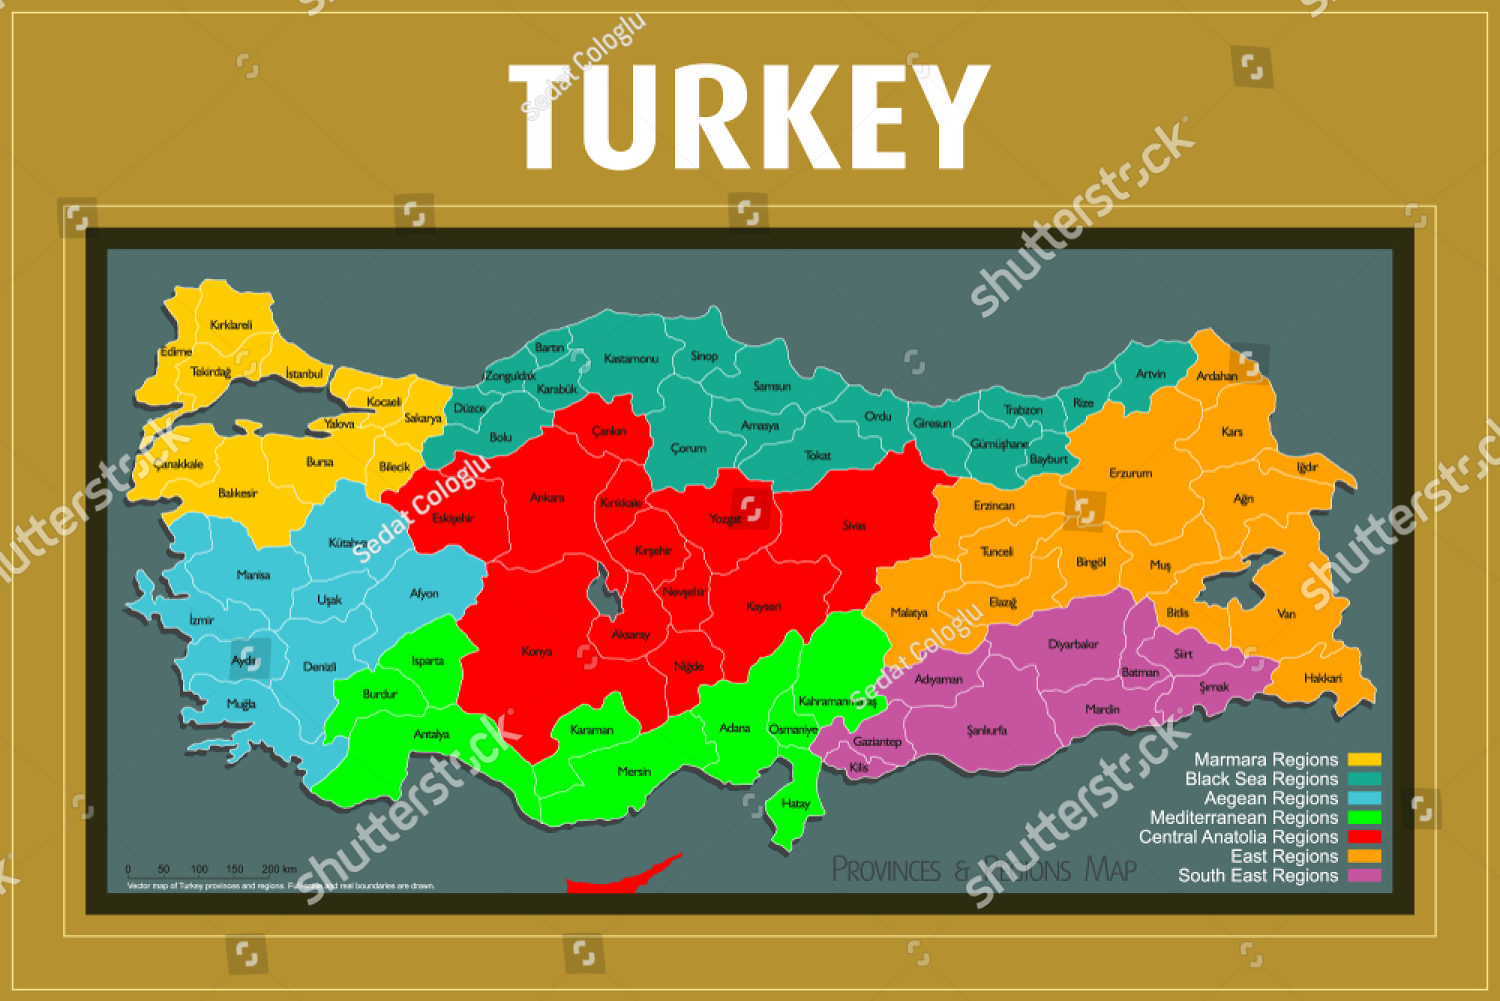 stock-vector-turkey-provinces-and-regions-map-high-detailed-all-province-maps-are-available-as-separate-usable-1486164014